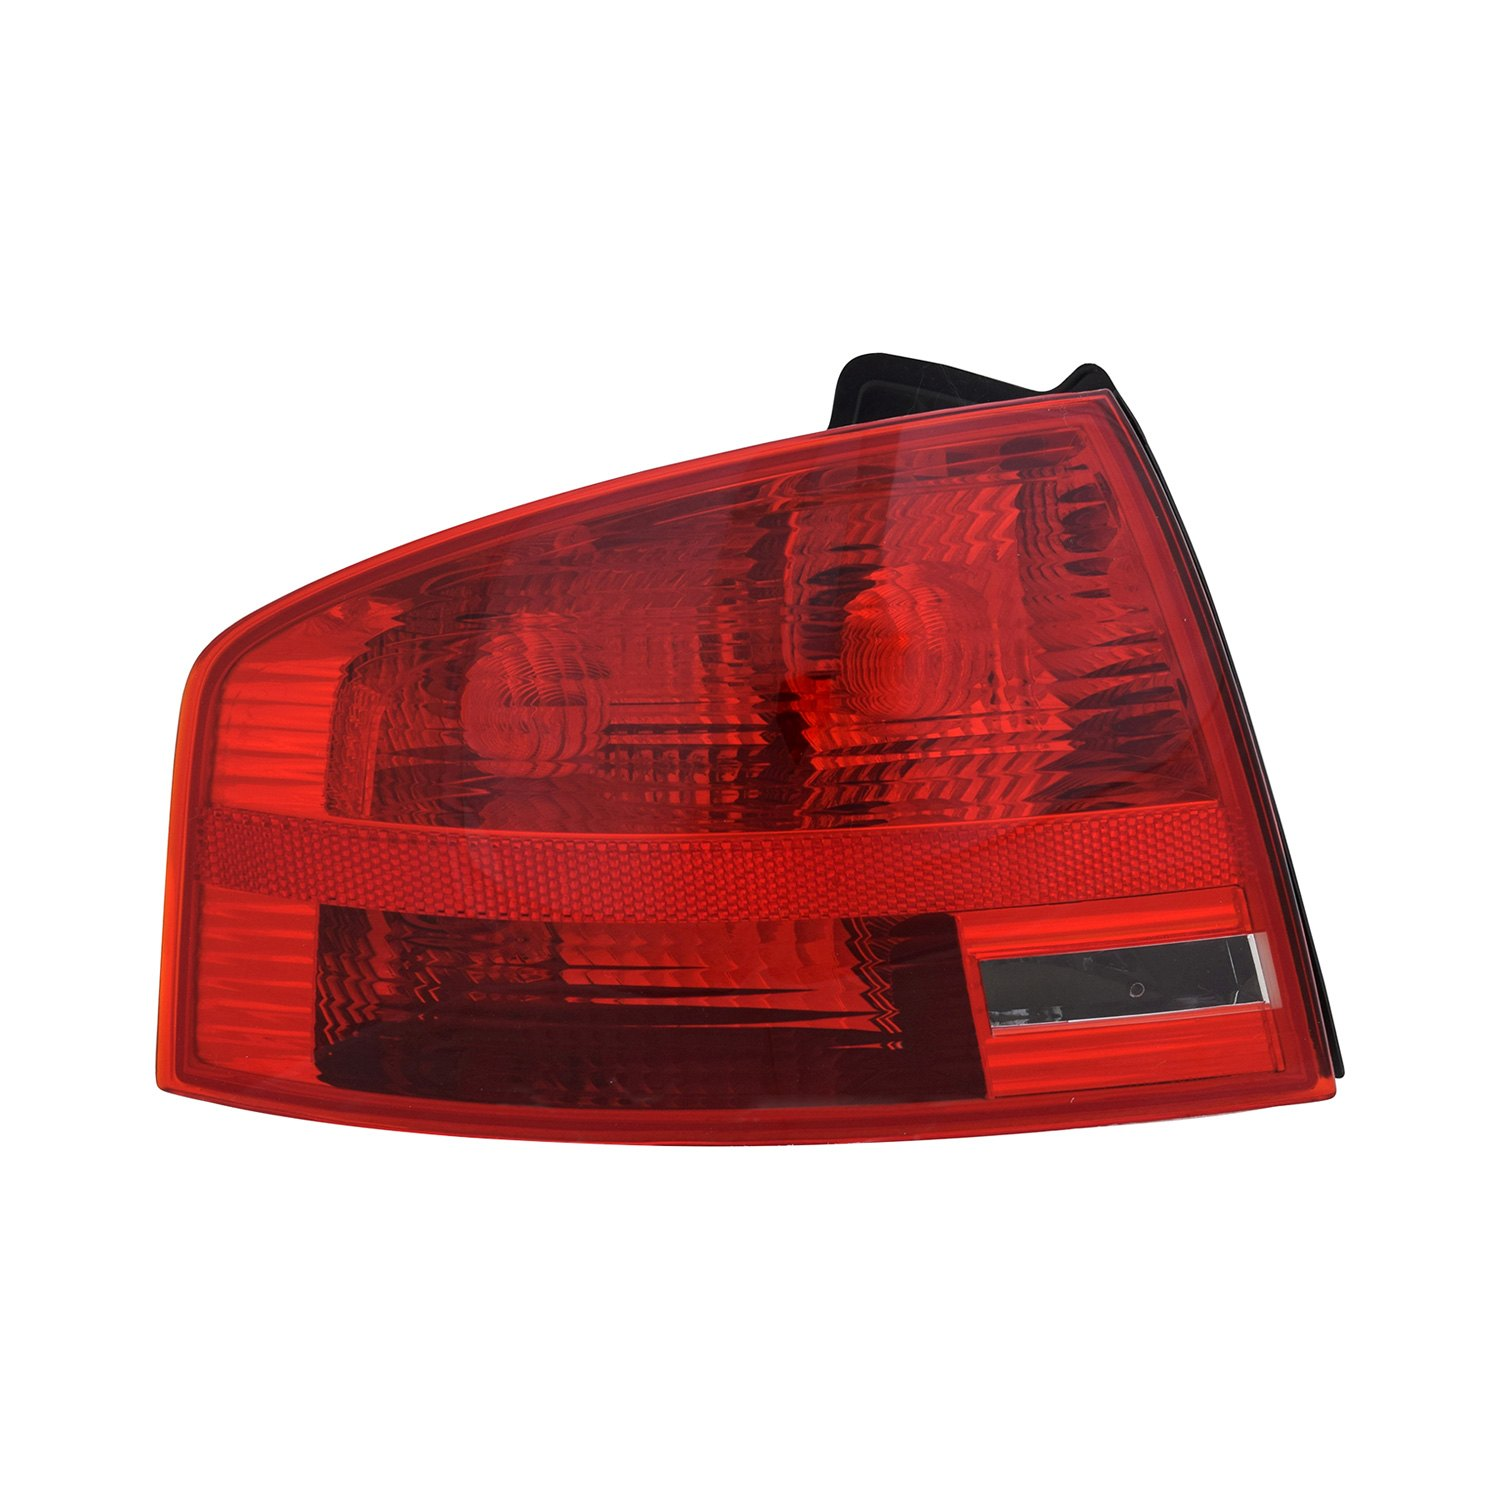 tyc audi a4 2008 replacement tail light. Black Bedroom Furniture Sets. Home Design Ideas